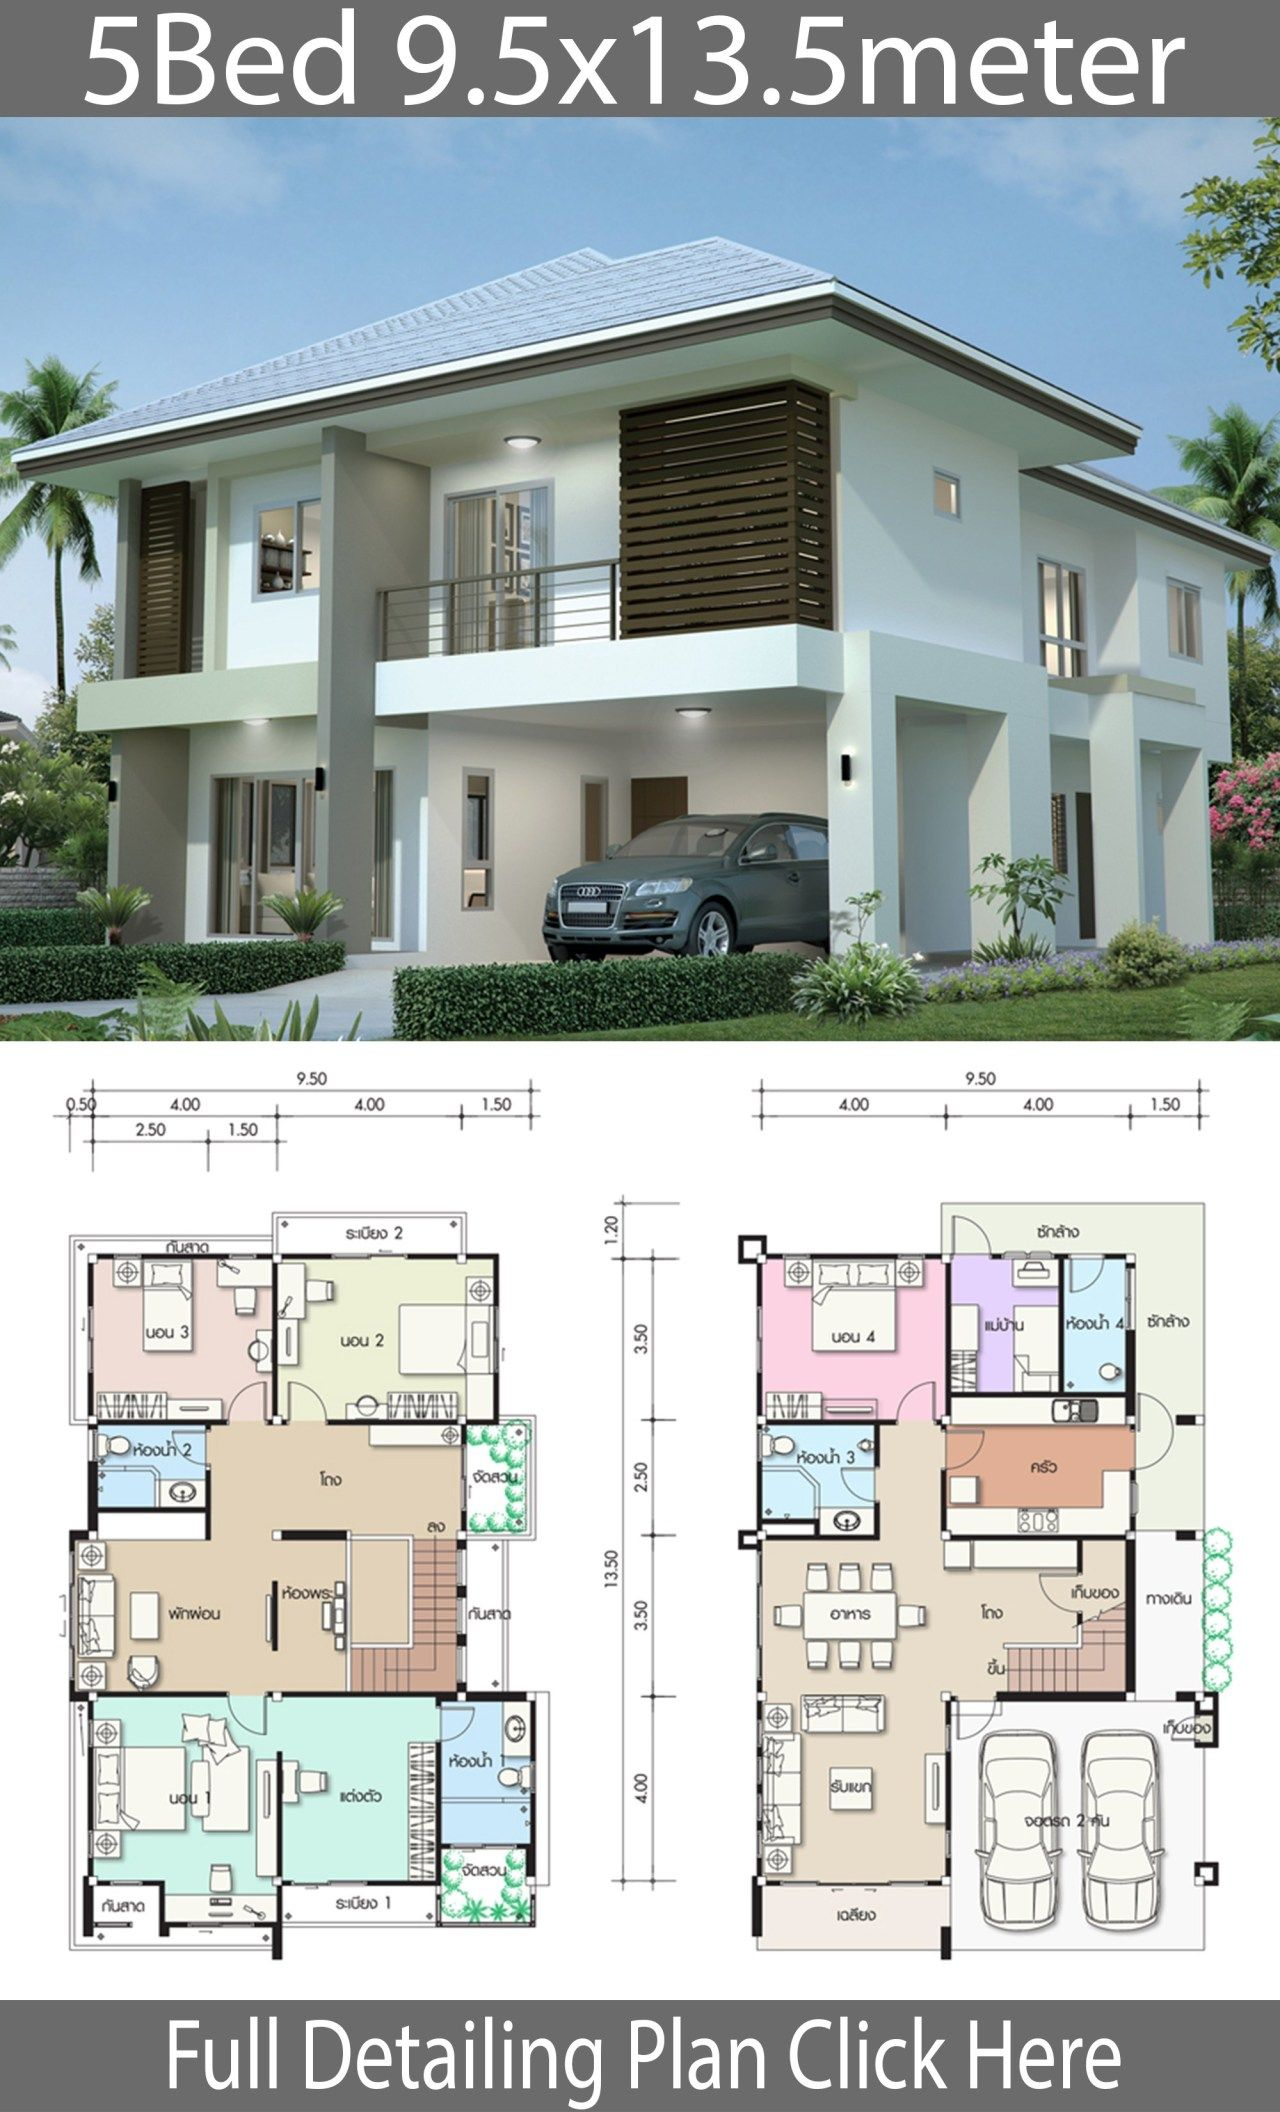 House Design Plan 9 5x13 5m With 5 Bedrooms In 2020 With Images Duplex House Design Architectural House Plans Home Design Plans